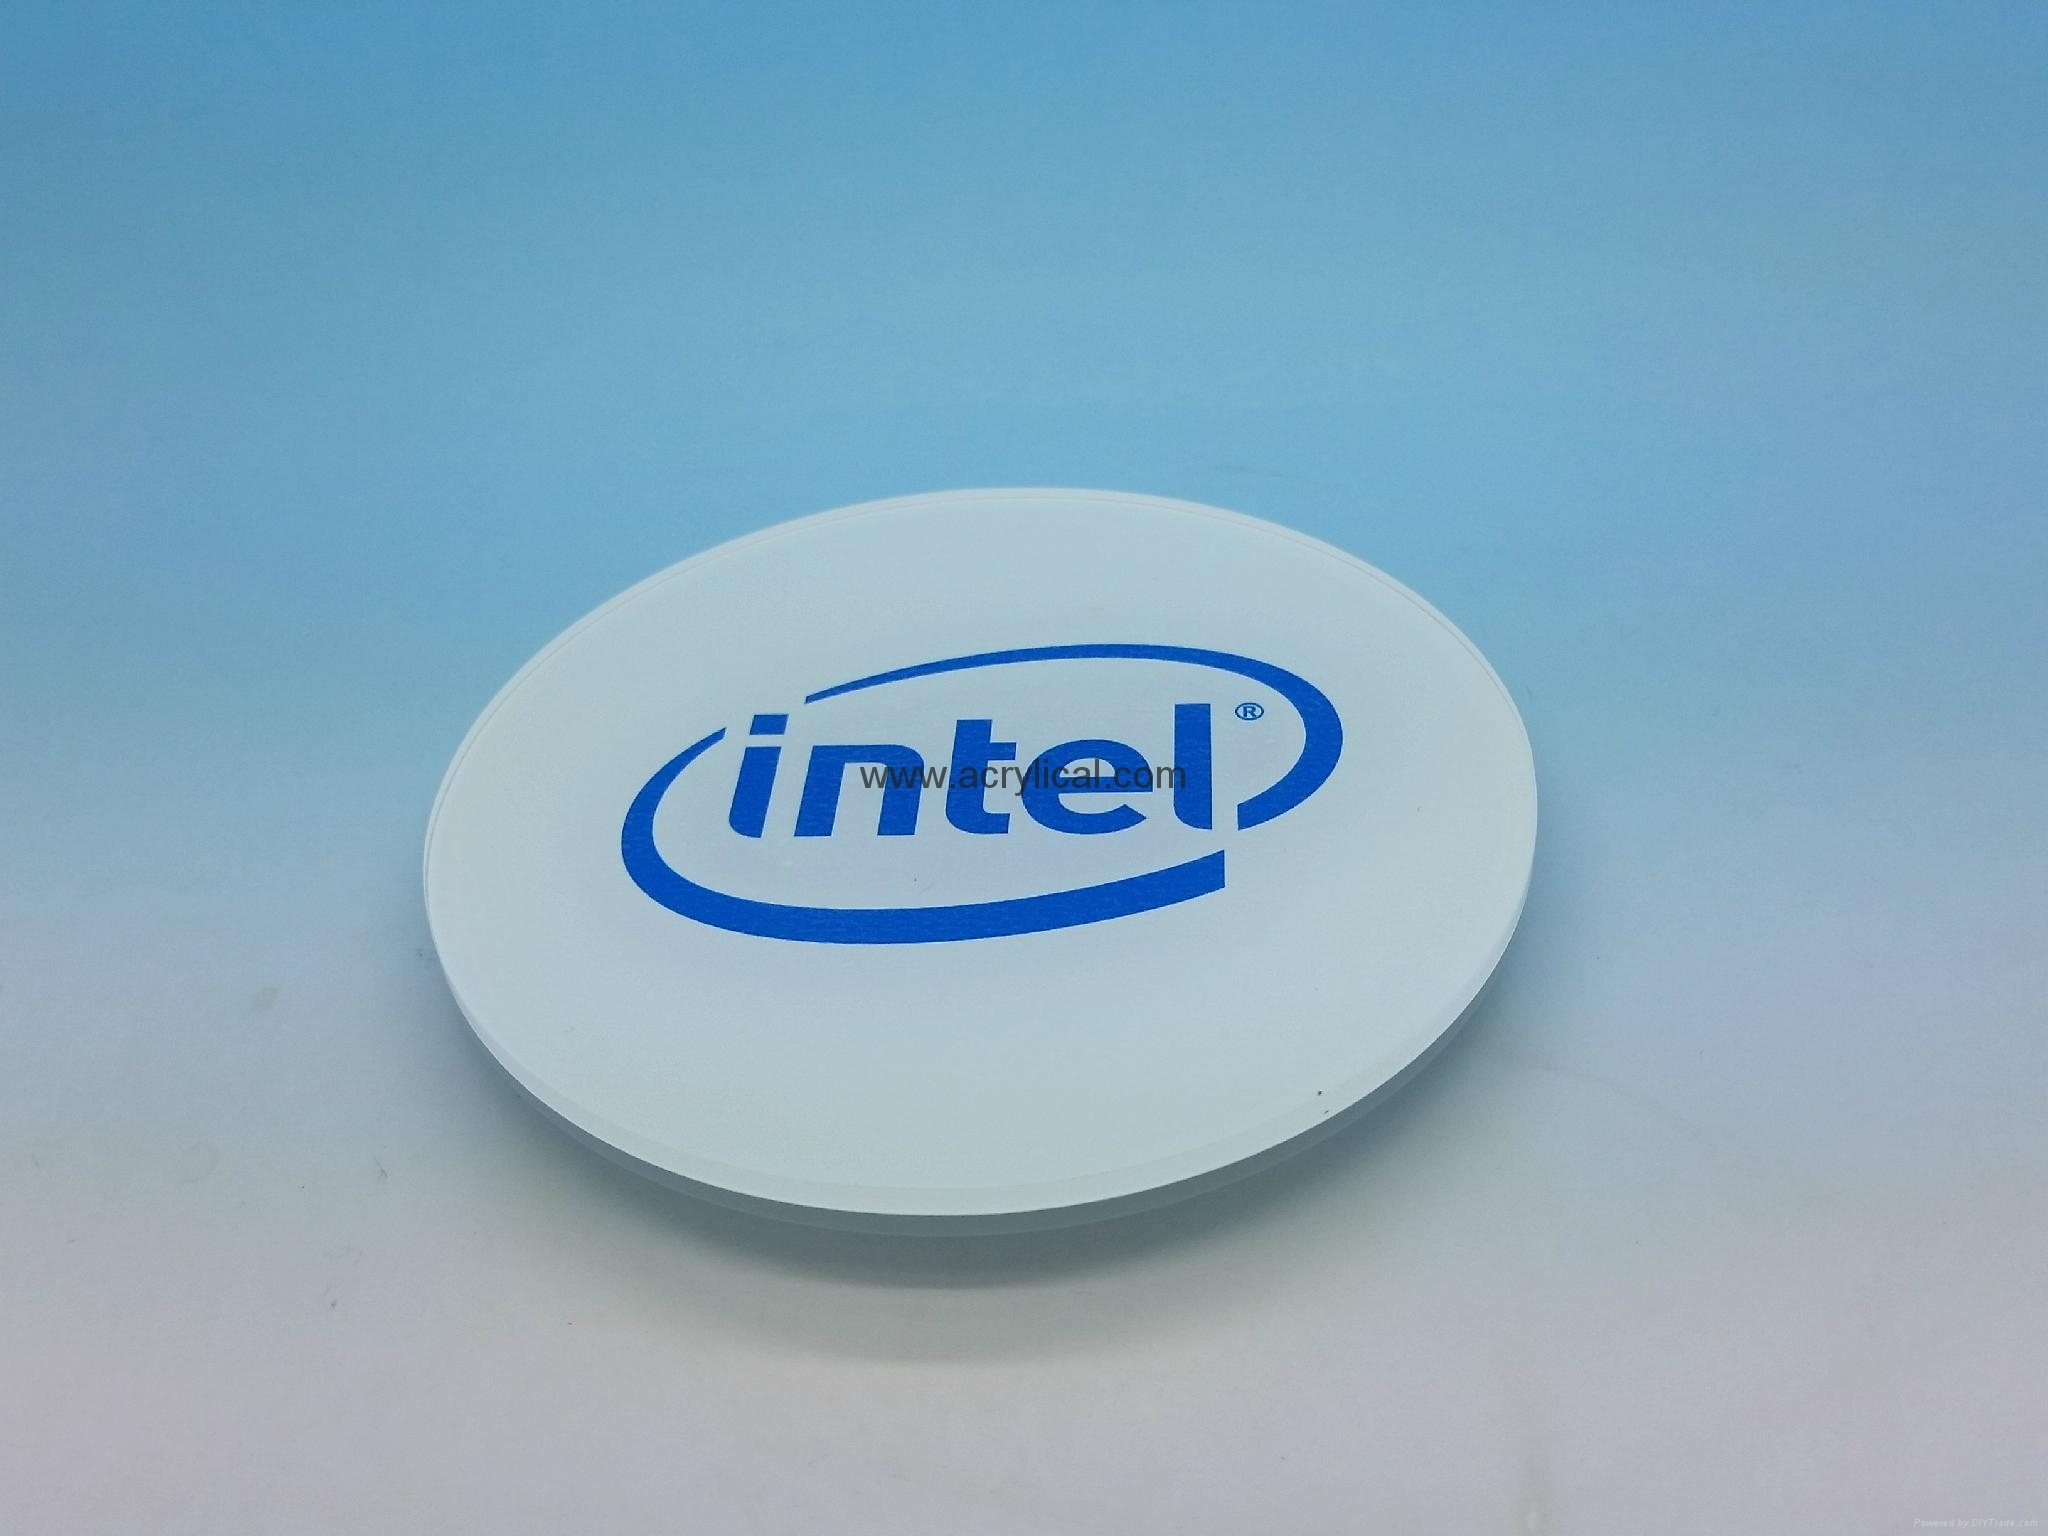 Corporation gift-intel coaster,Acrylic coaster-promotion gift,Corporation gifts,Acrylic display stands, Acrylic sign letter ,Acrylic photo Frame,Literature displays, Brochure holders, Acrylic sign holder,Menu stand,Promotion gifts,Cell phone display stands, Acrylic Easel Book Holder Rack,Acrylic display case/Box ,Diecast car display case ,Trophies, Artistic ,POP display stands,Acrylic coaster,Jewelry display stand,dome display, eyewear display stands,LED lighting  Box,Poster display,LED display stands,Watch display stand,Counter top display stand,POP stand,POP display,Floor Standing Unit ,PETG,PVC,Vacuum forming,Window display stand,Acrylic Award,Cosmetic display,metal display rack, acrylic display rack.wooden display rack,retail shop display stand